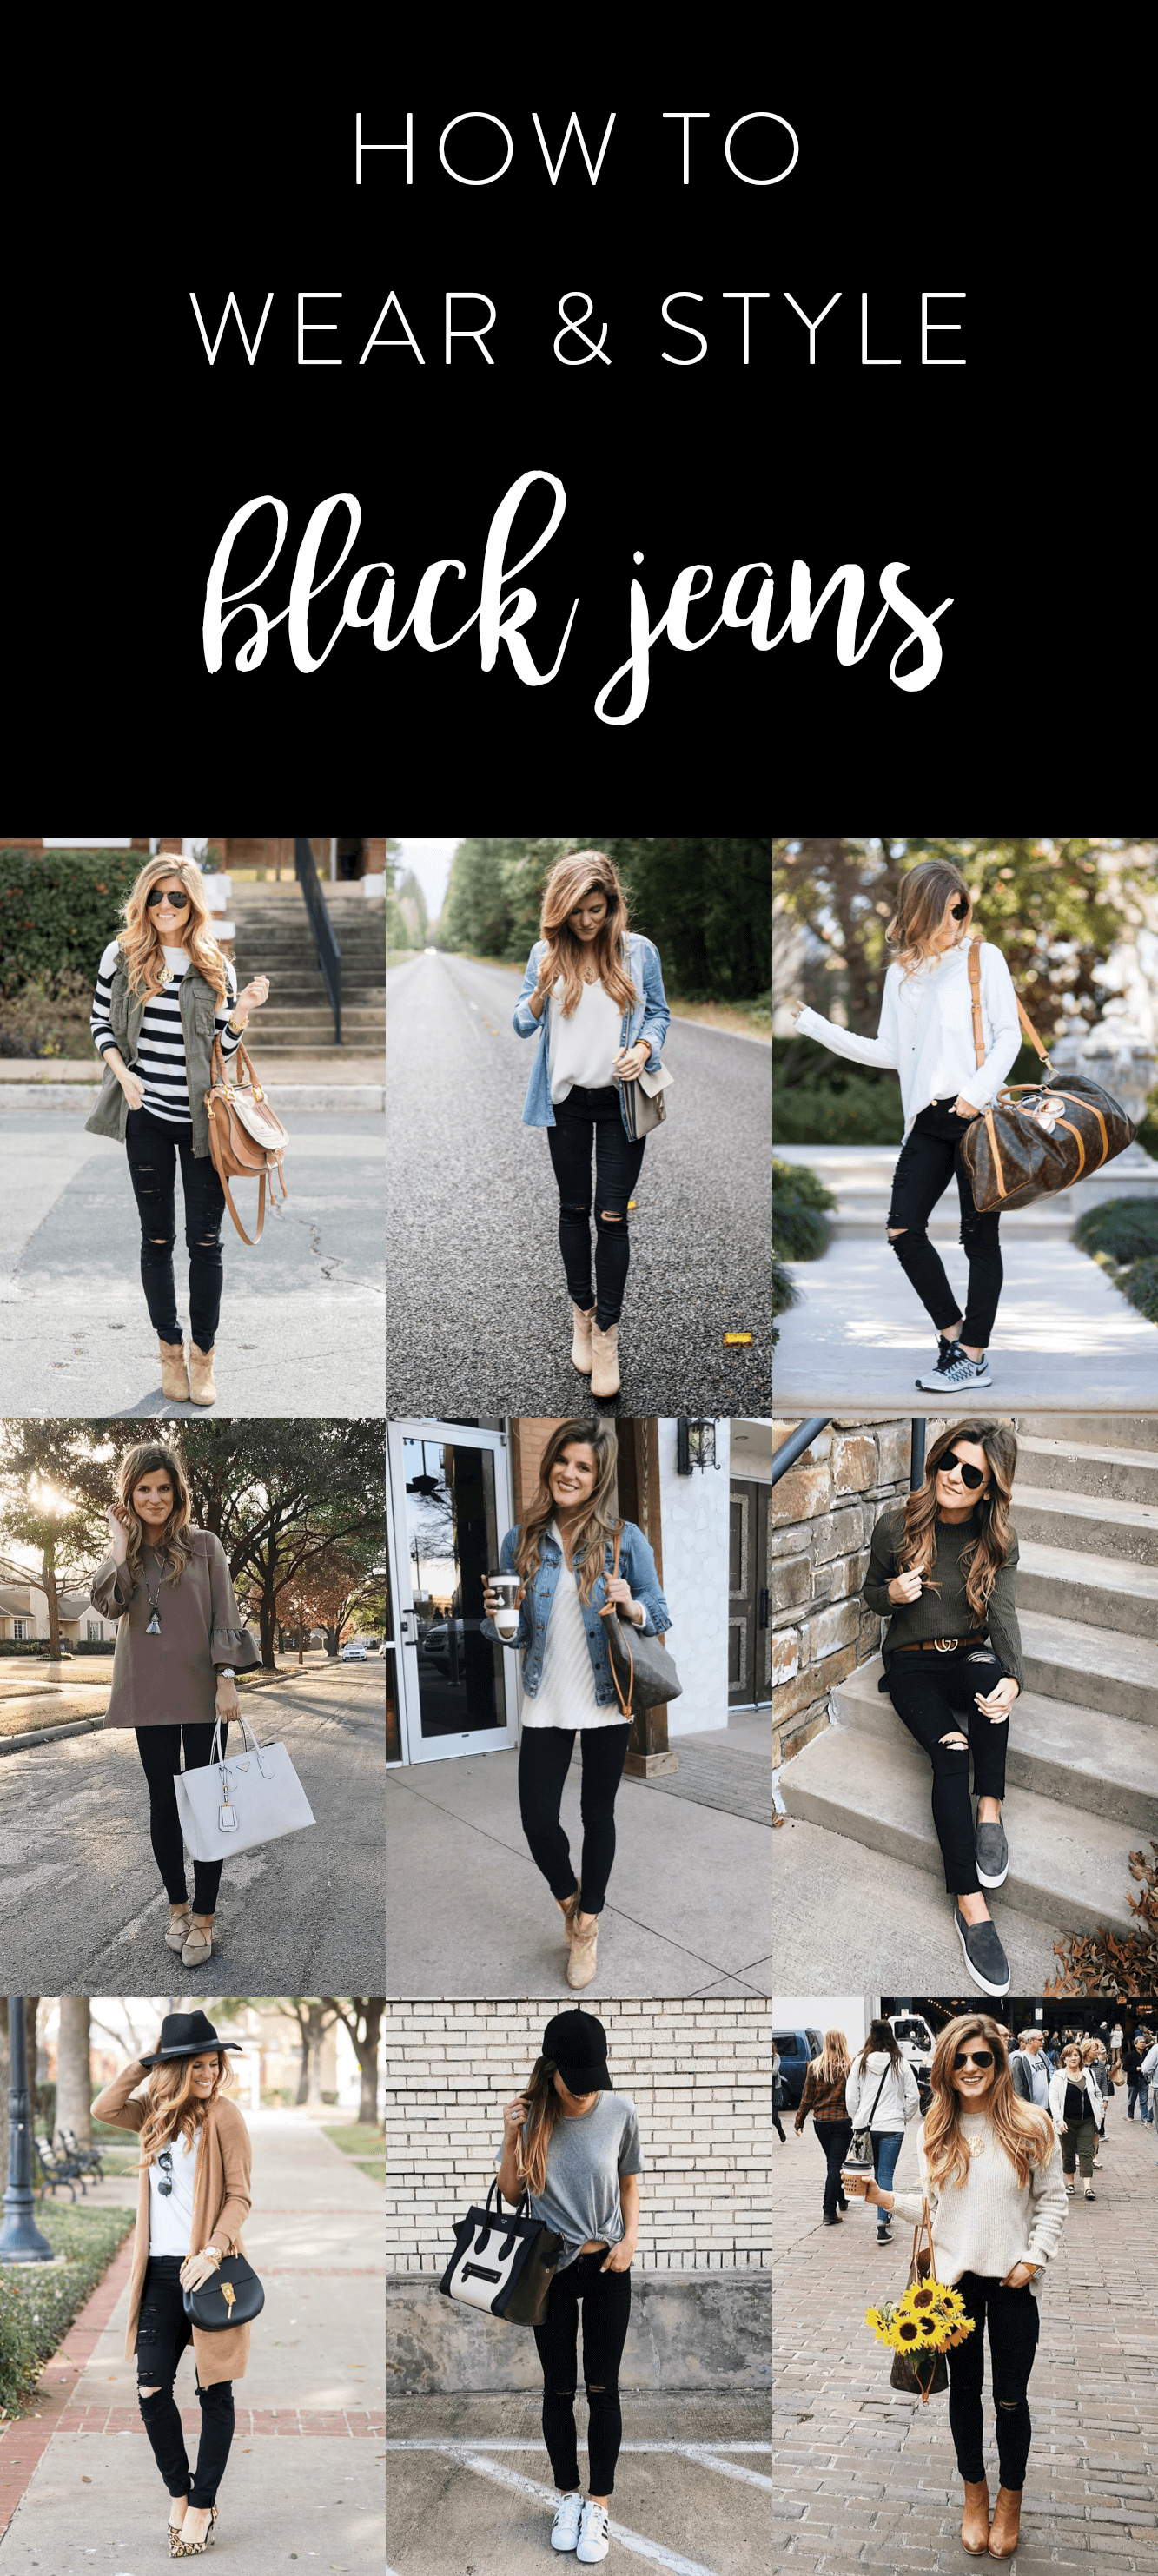 c53b1011517 What to wear with black jeans - 30+ Black Jeans Outfit Ideas